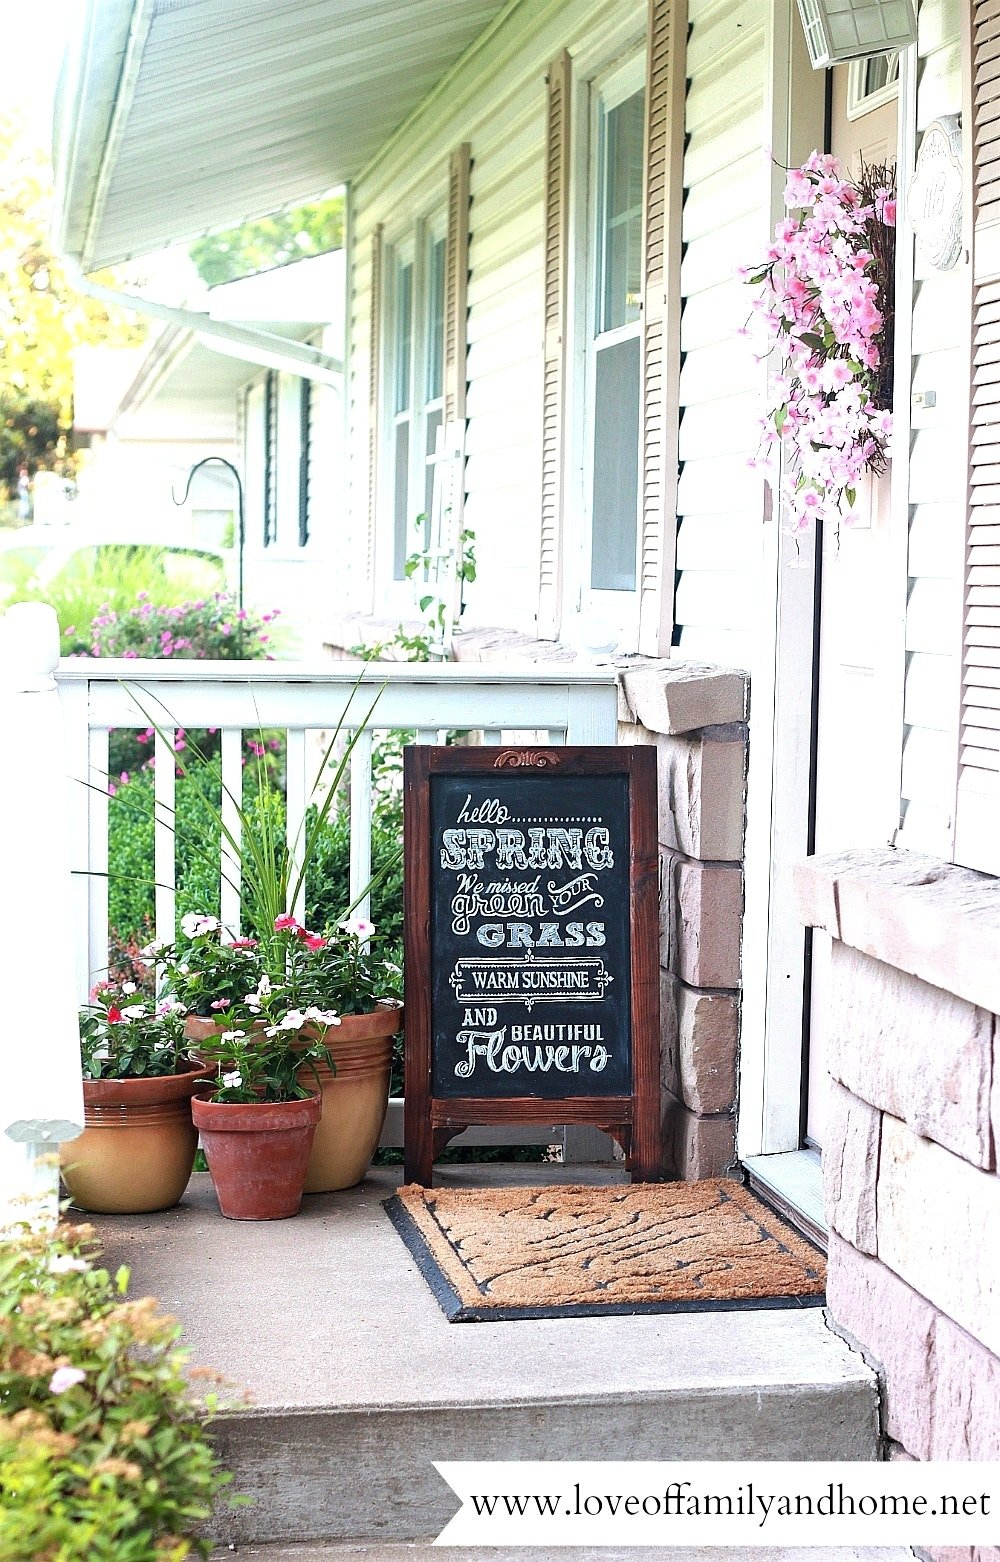 10 Ideal Front Porch Decorating Ideas For Spring small front porch decorating ideas for spring fine birdcages fall 2021